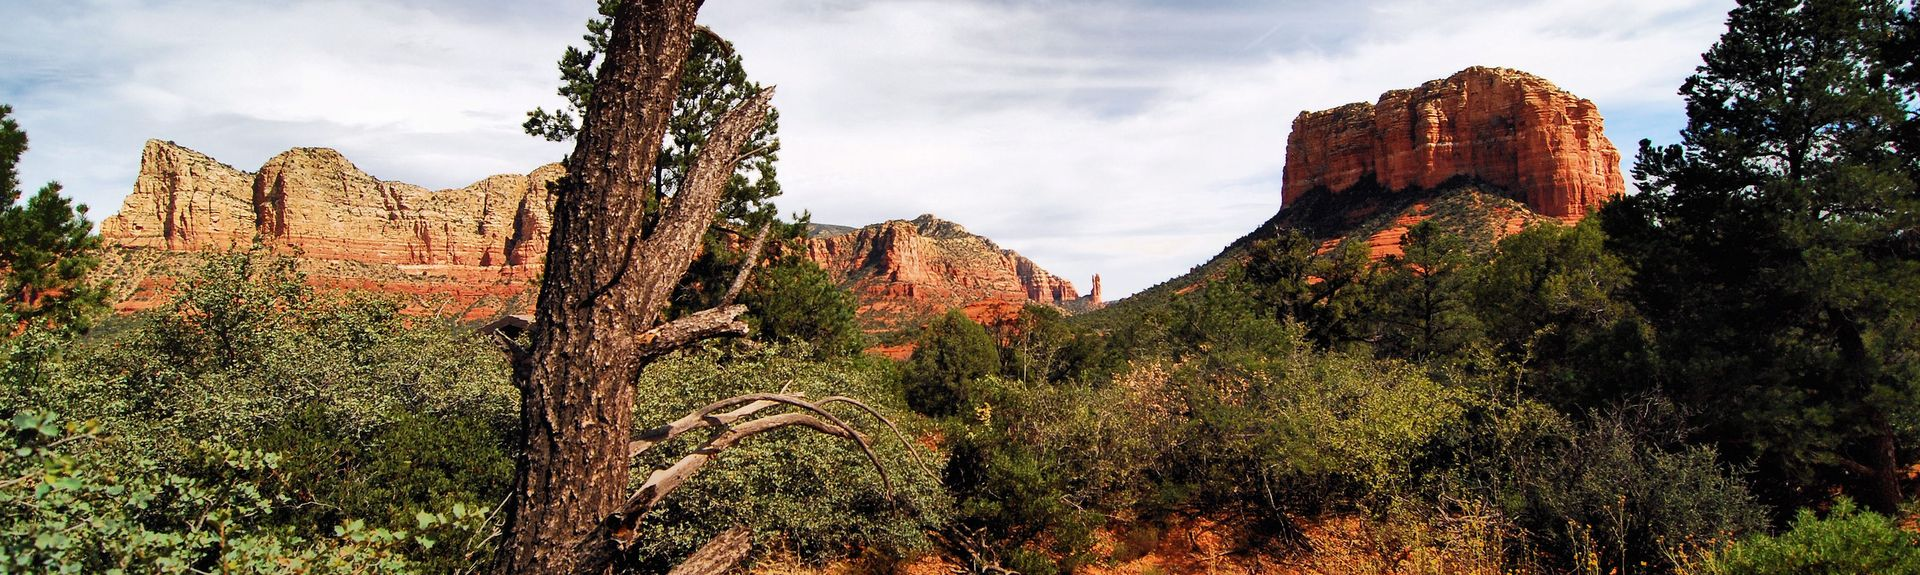 Sedona, Arizona, United States of America